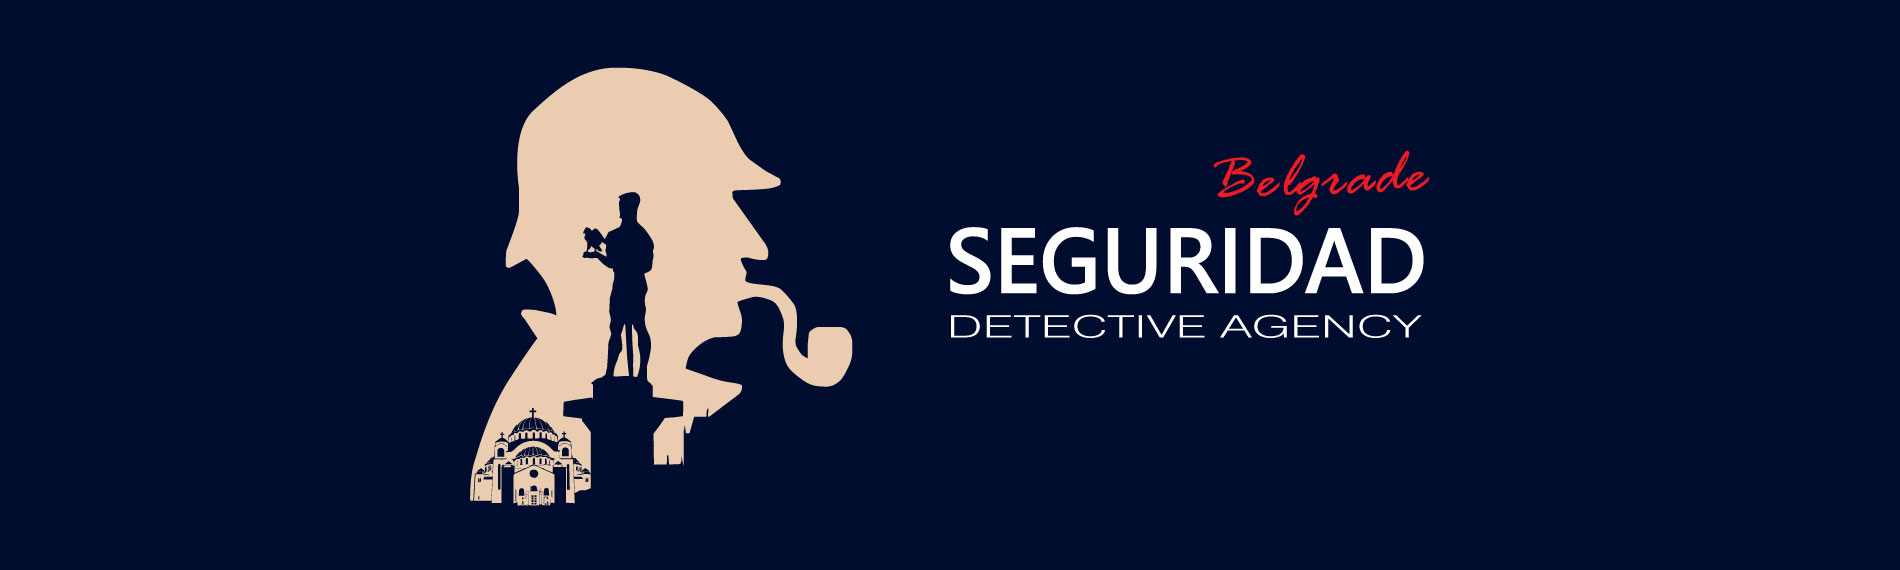 Detective agency Seguridad ltd Belgrade private investigator